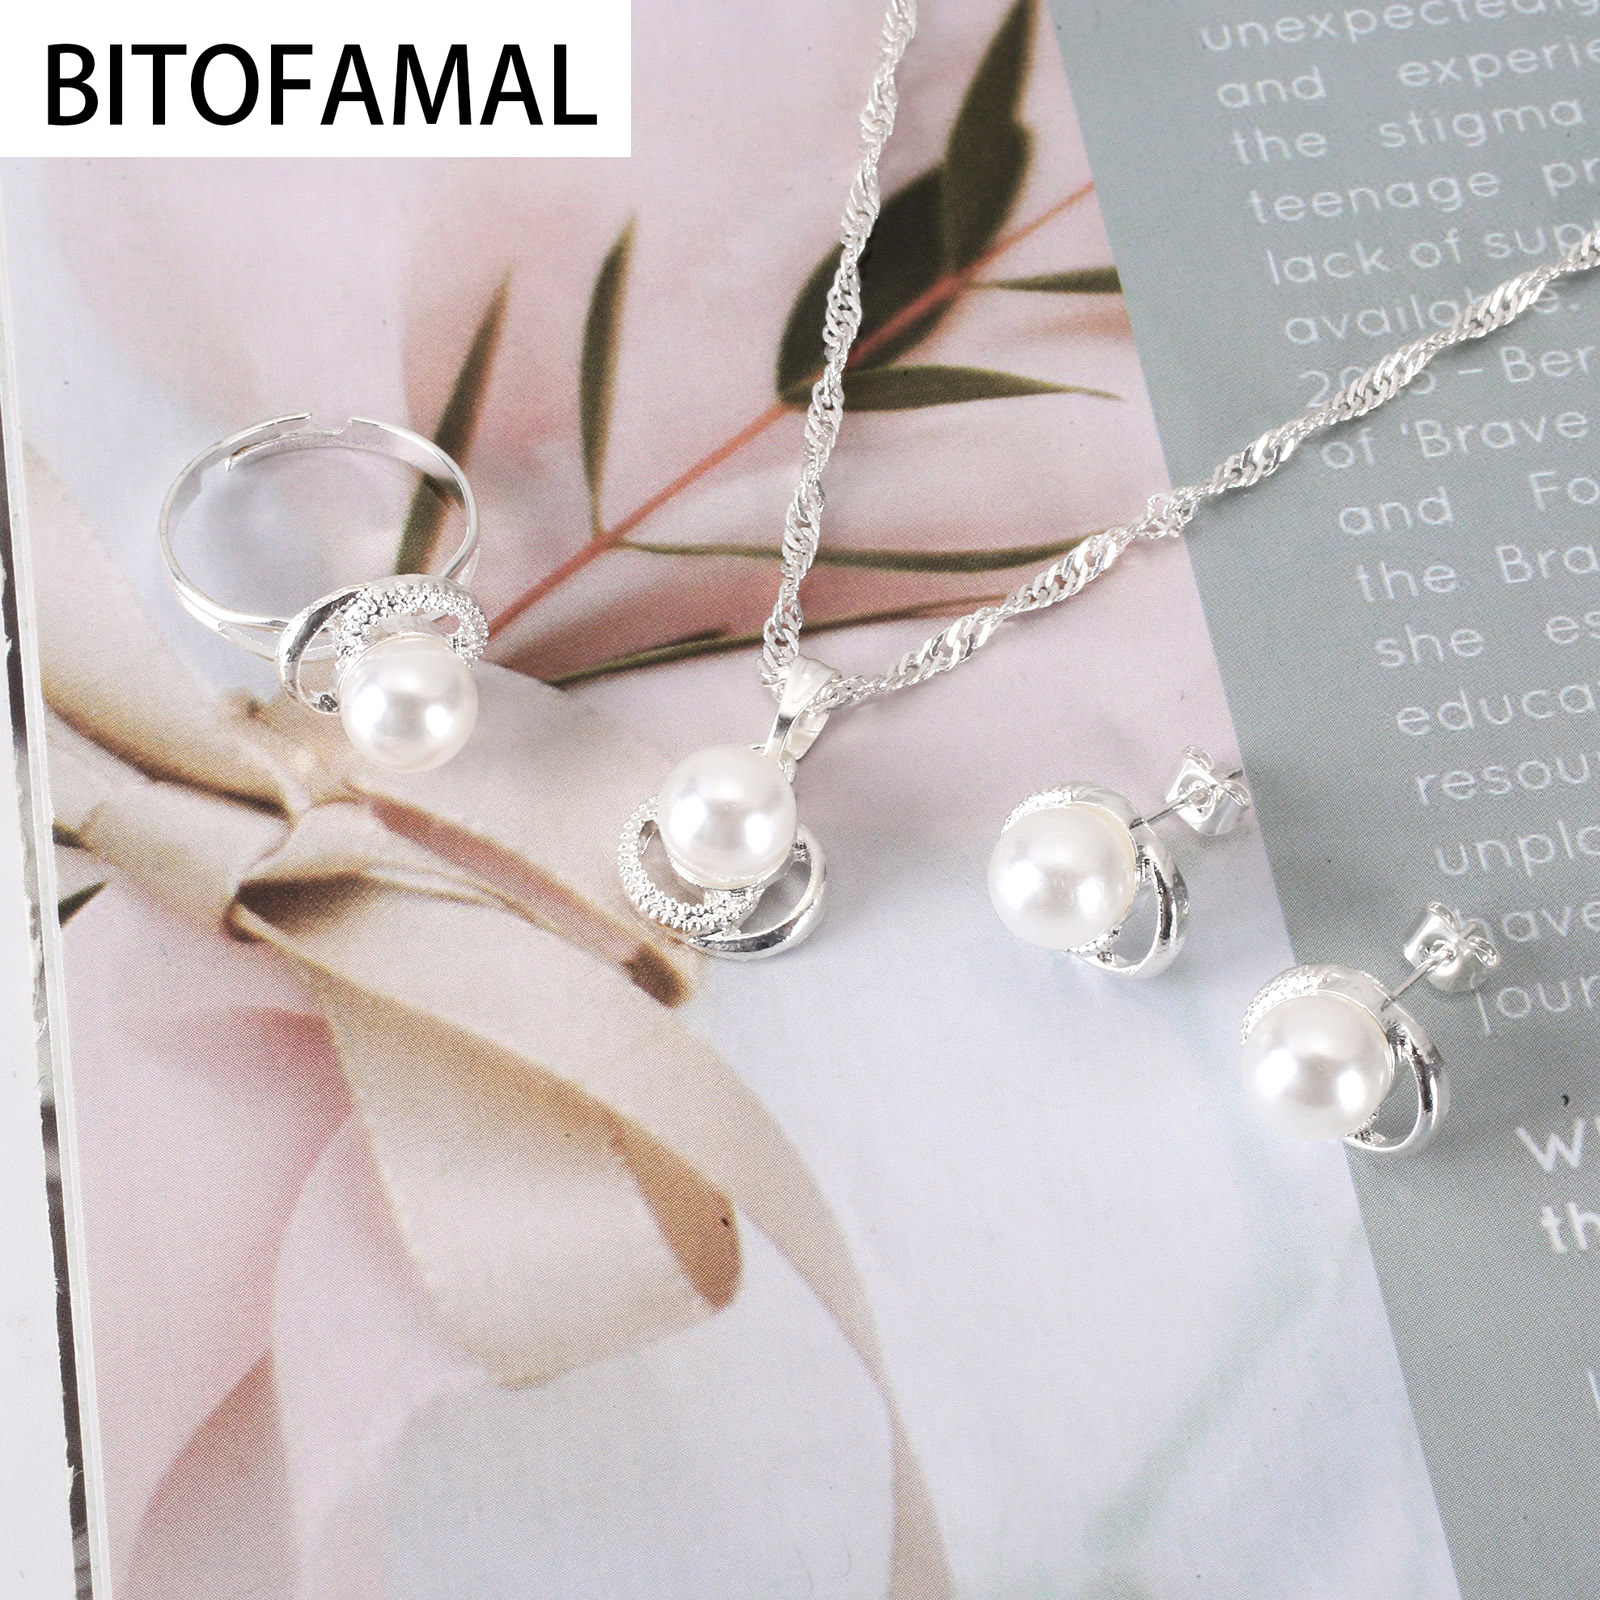 1 Set 3in1 Imitation Pearl Alloy Set Color white Earrings Necklace Ring for Women Girls  Trendy Cute Elegant Gifts for Party 1